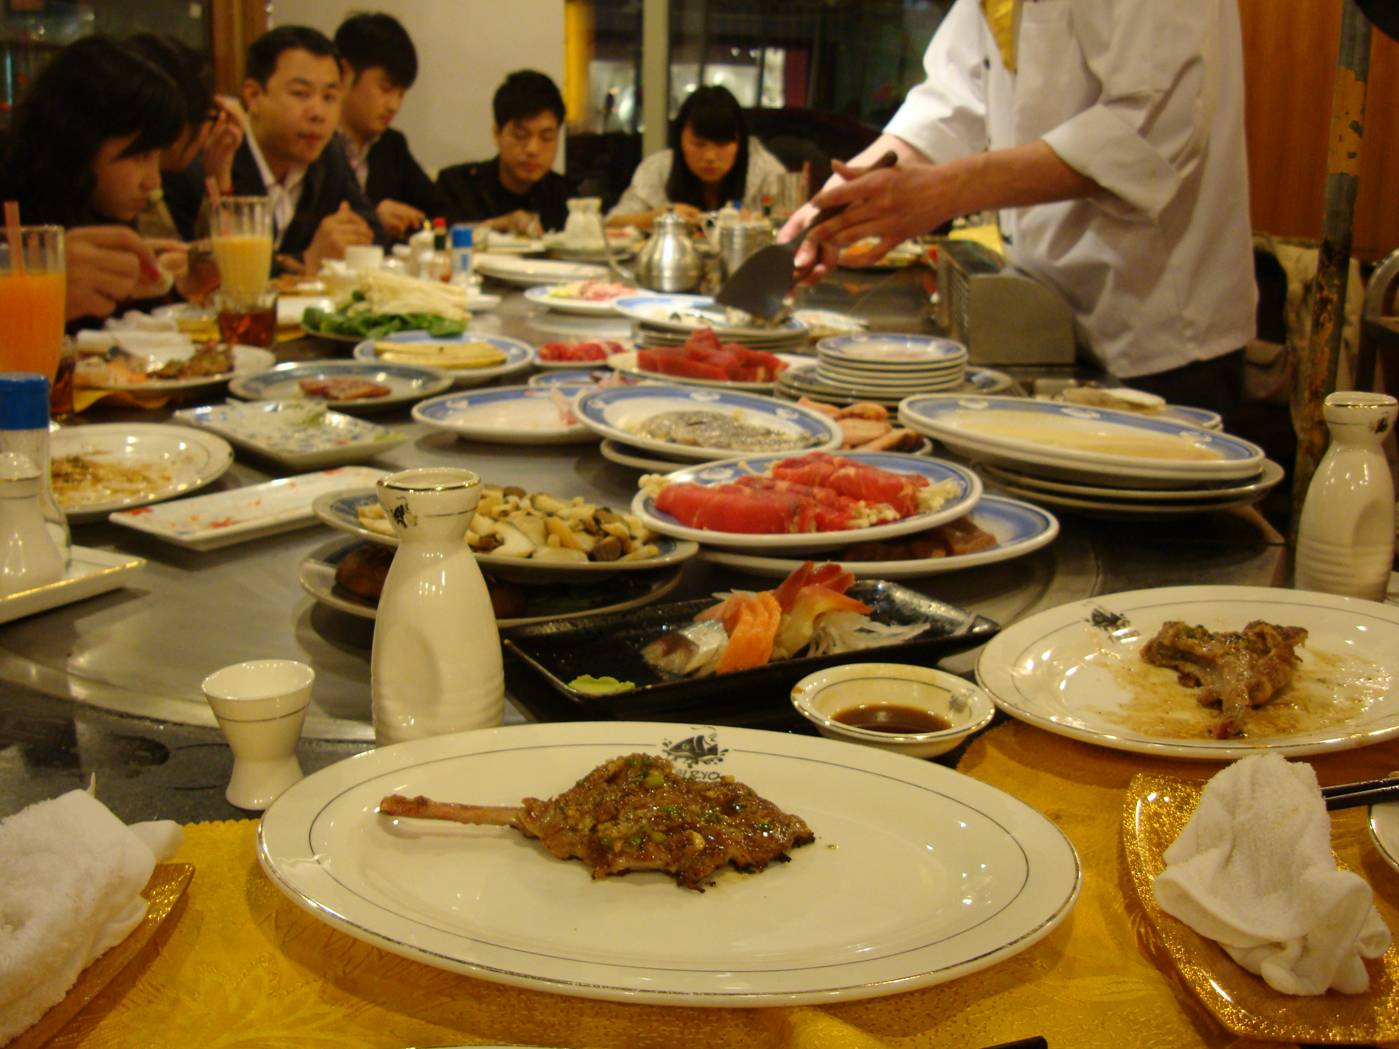 Picture:  The food ready to be cooked at our table.  Teppanyaki Restaurant, Wuxi, China